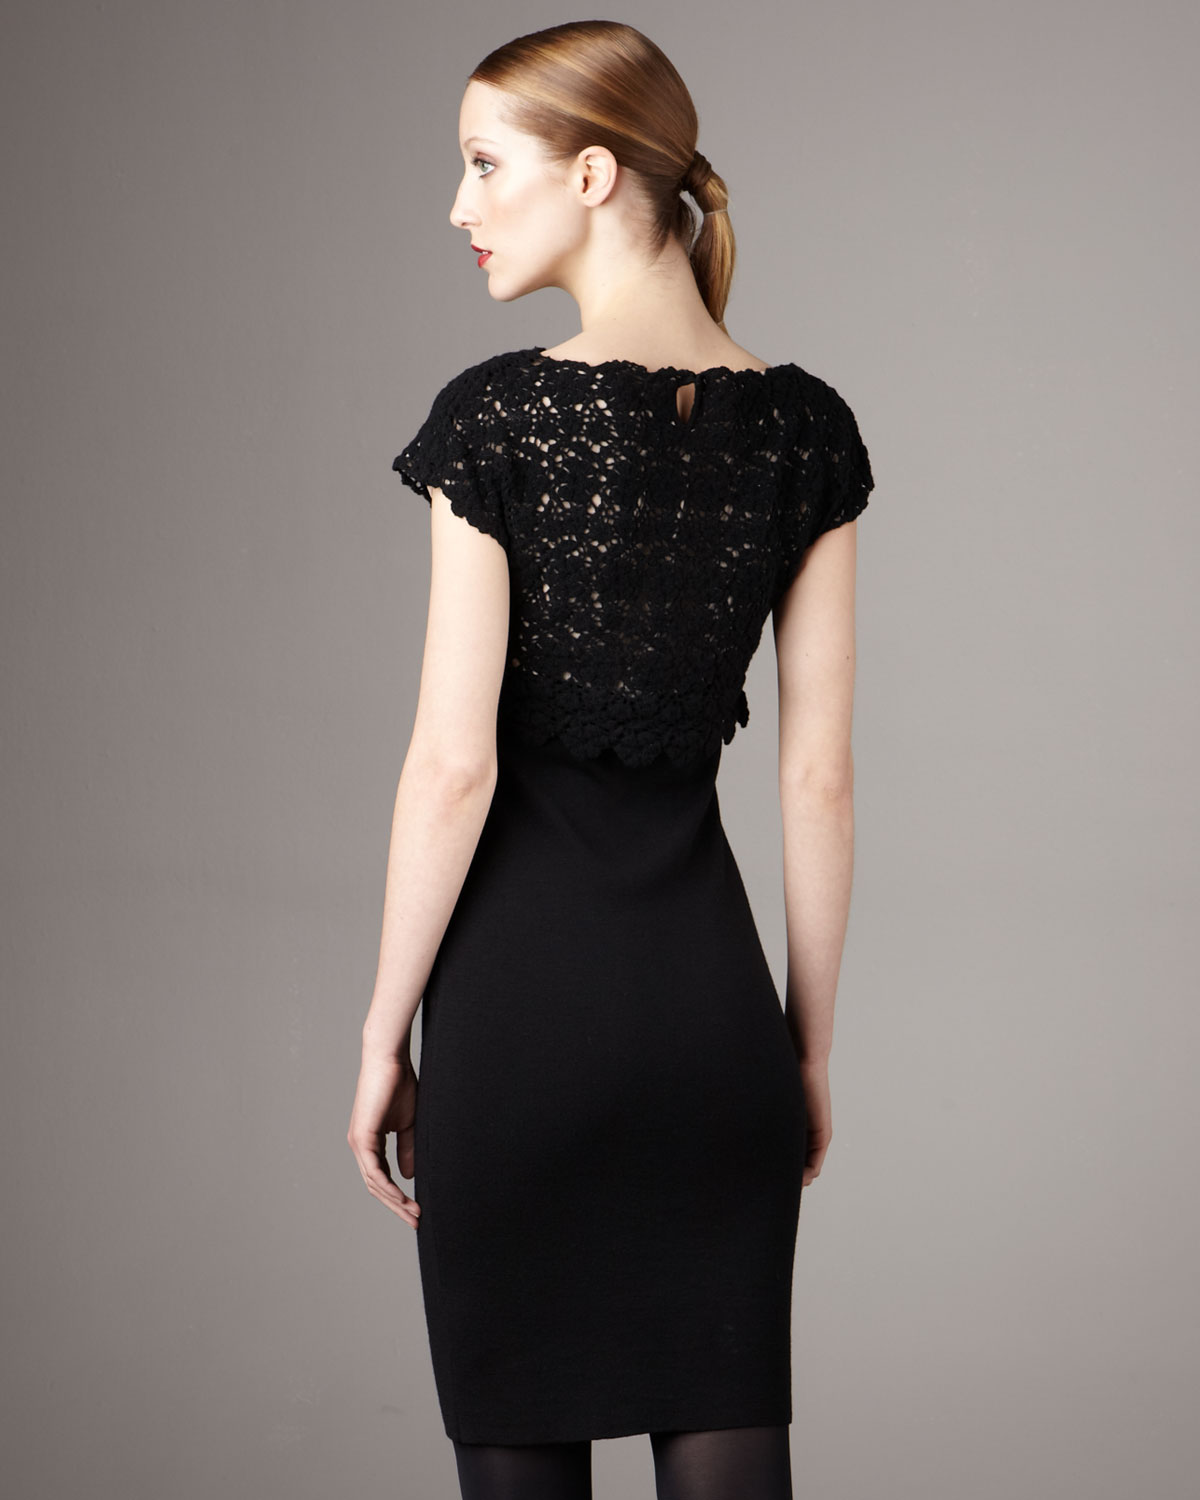 Lyst - Red Valentino Lace-top Dress in Black